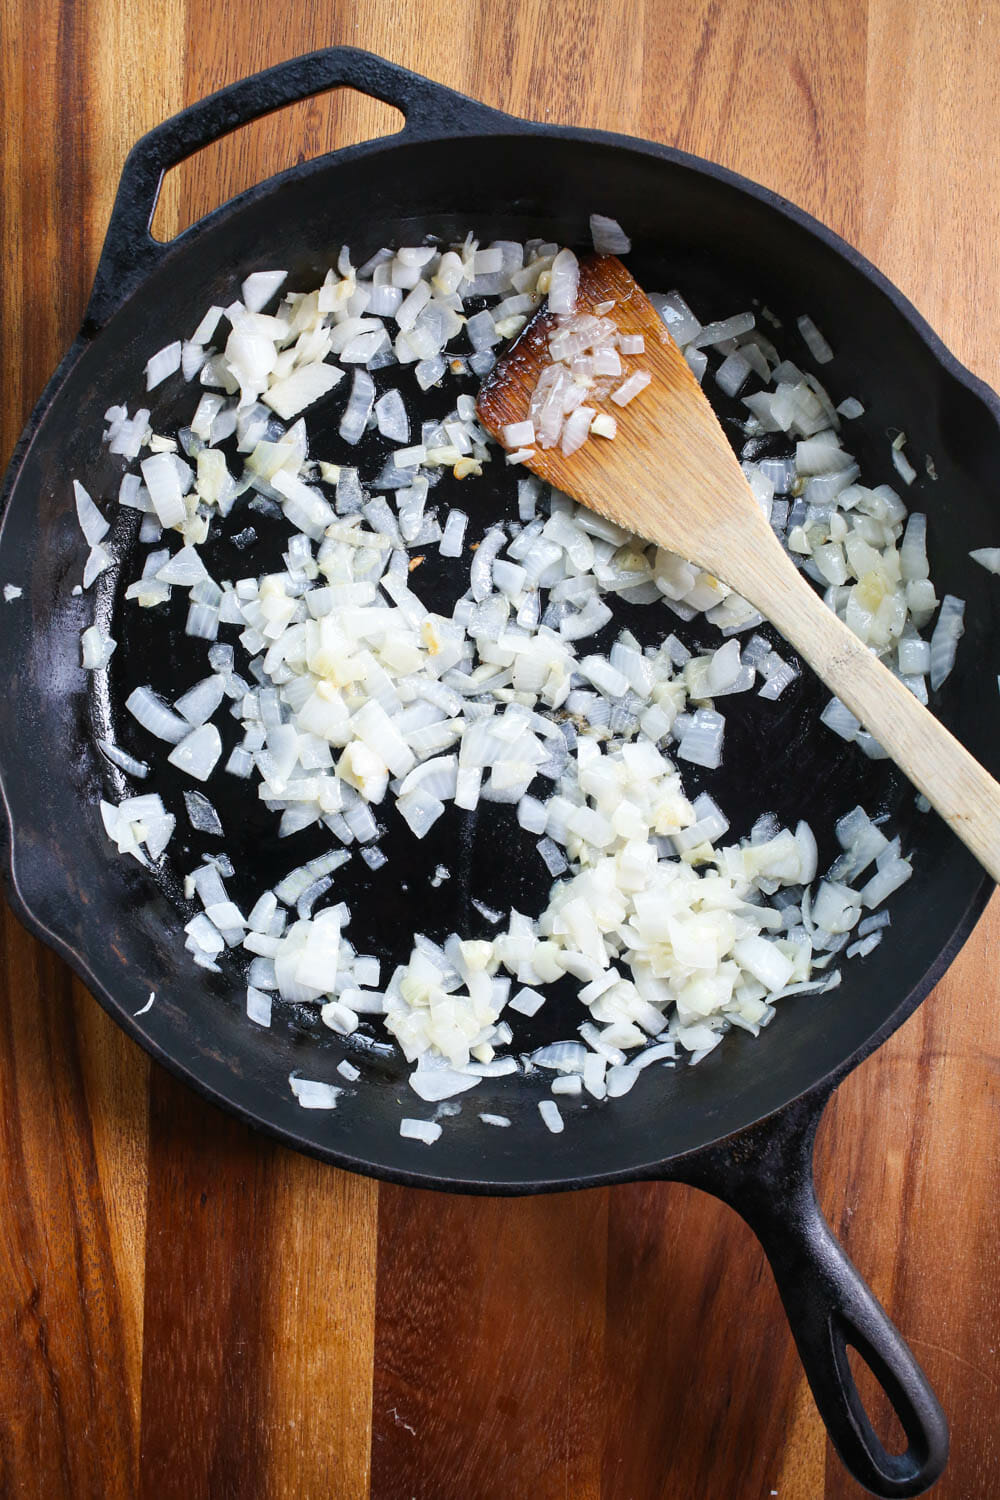 sauté onion and garlic